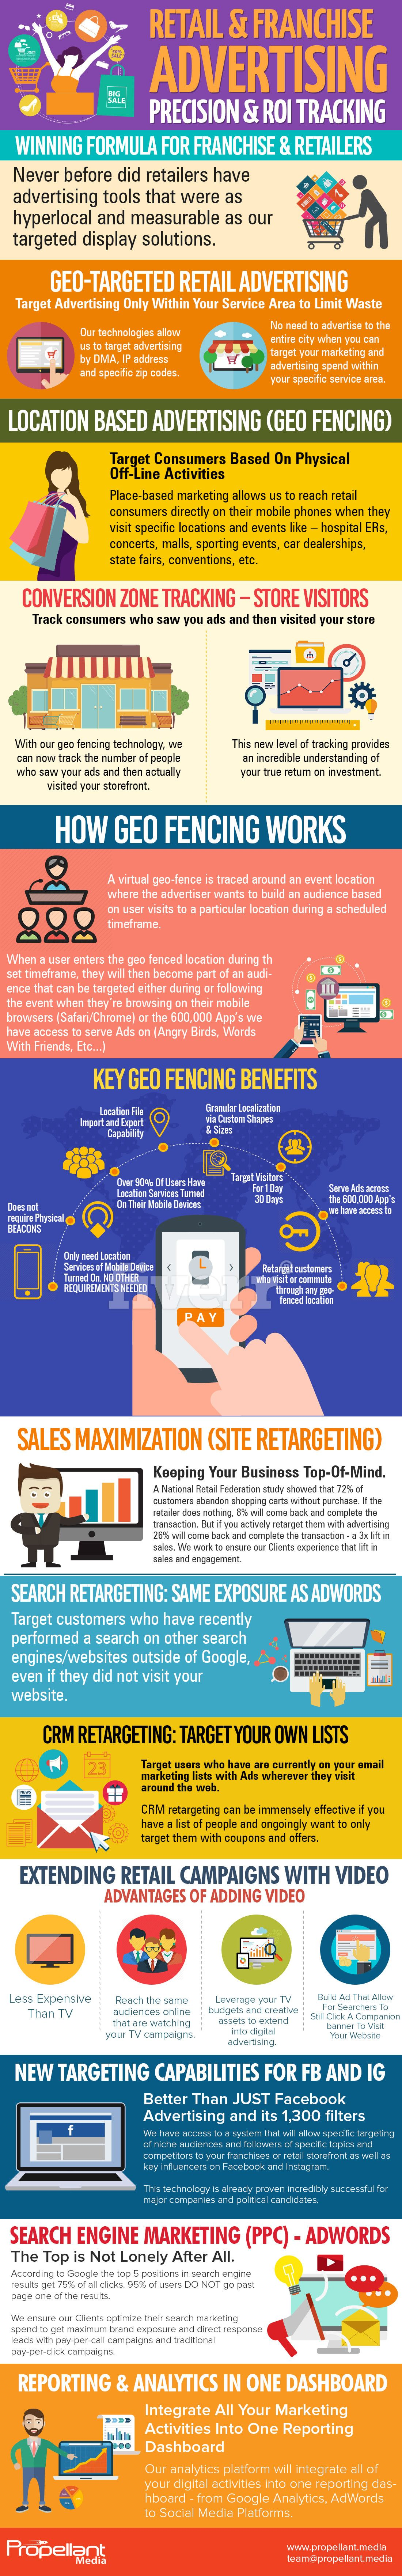 retail franchise geofencing marketing infographic